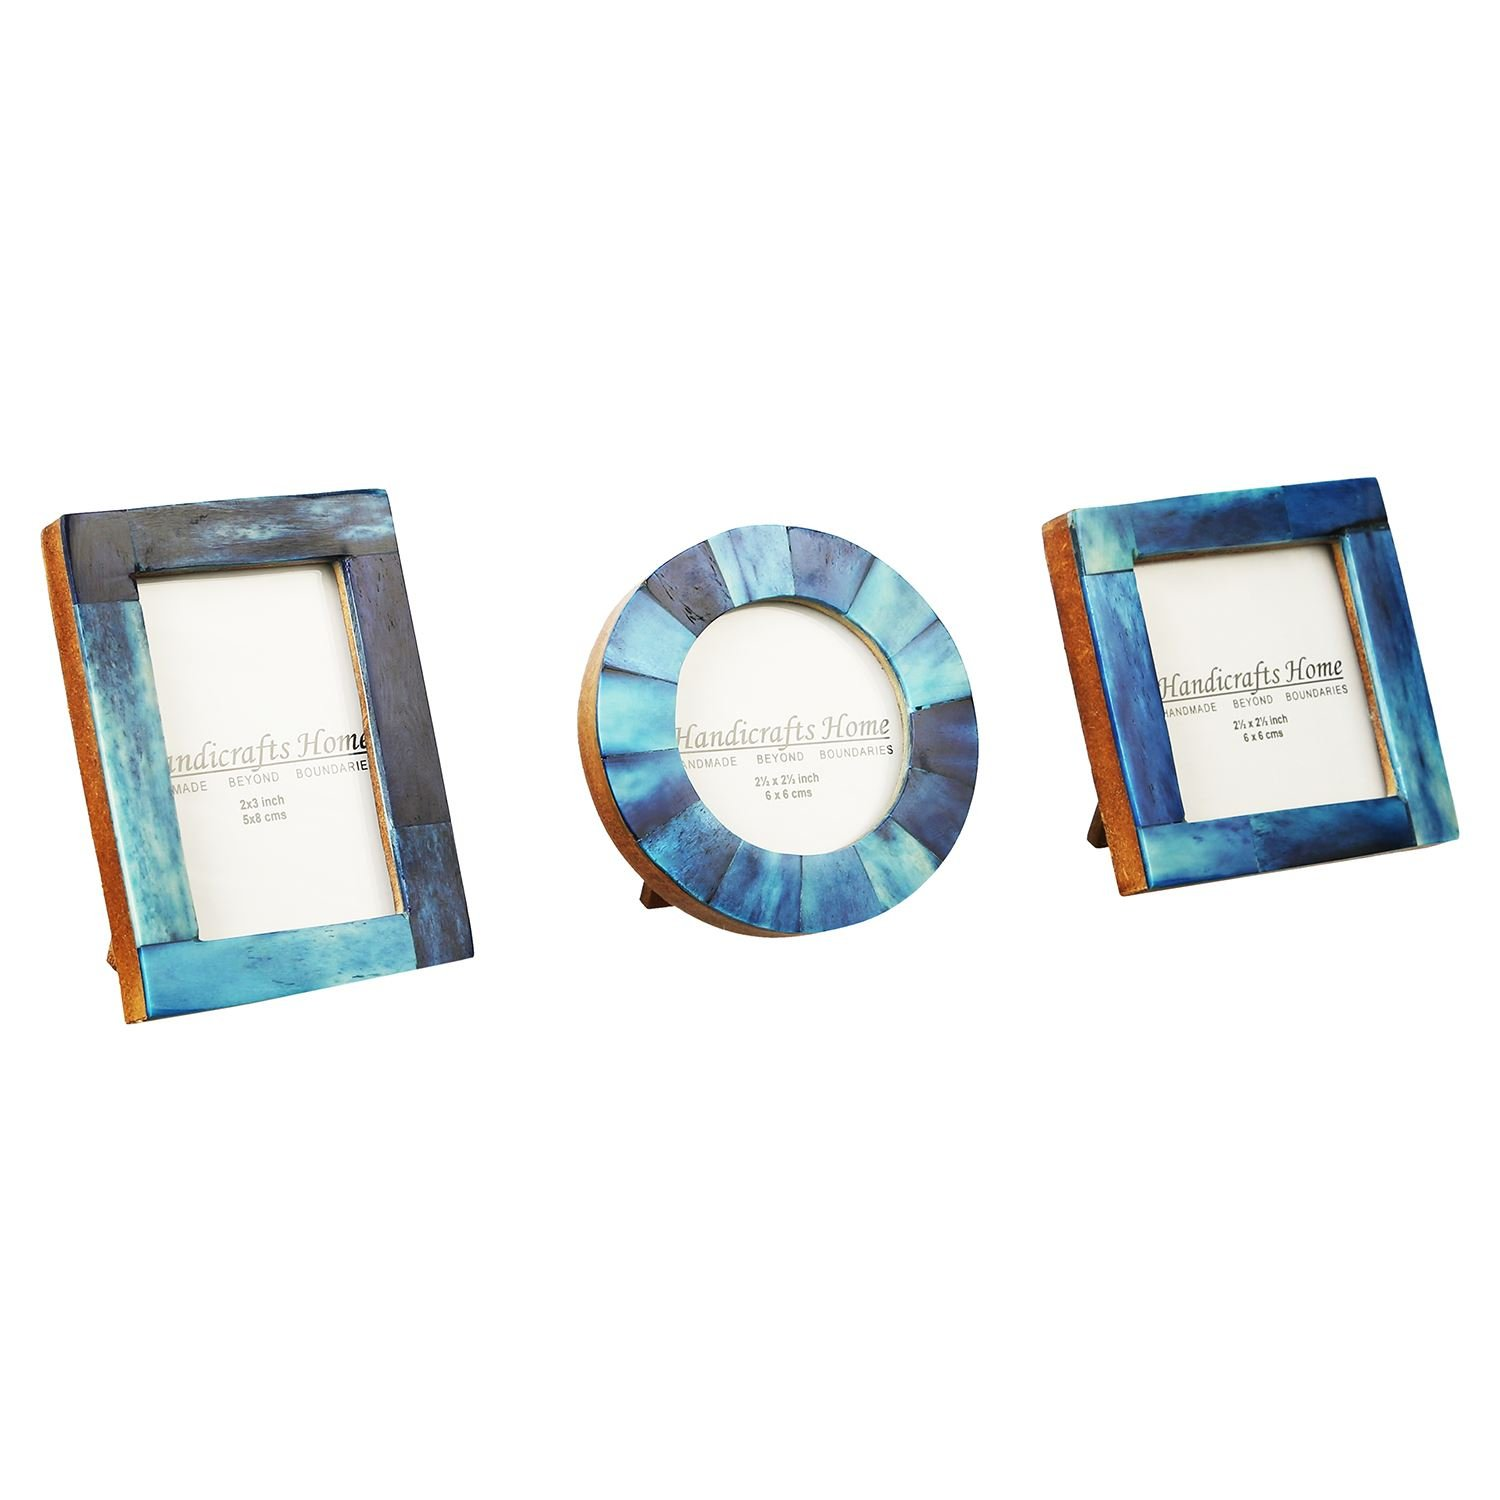 Baby Photo Frame Pure Bone Mother of Pearl Handicrafts Home Handmade Natural Picture Frames Set of 3 Pieces (Blue)